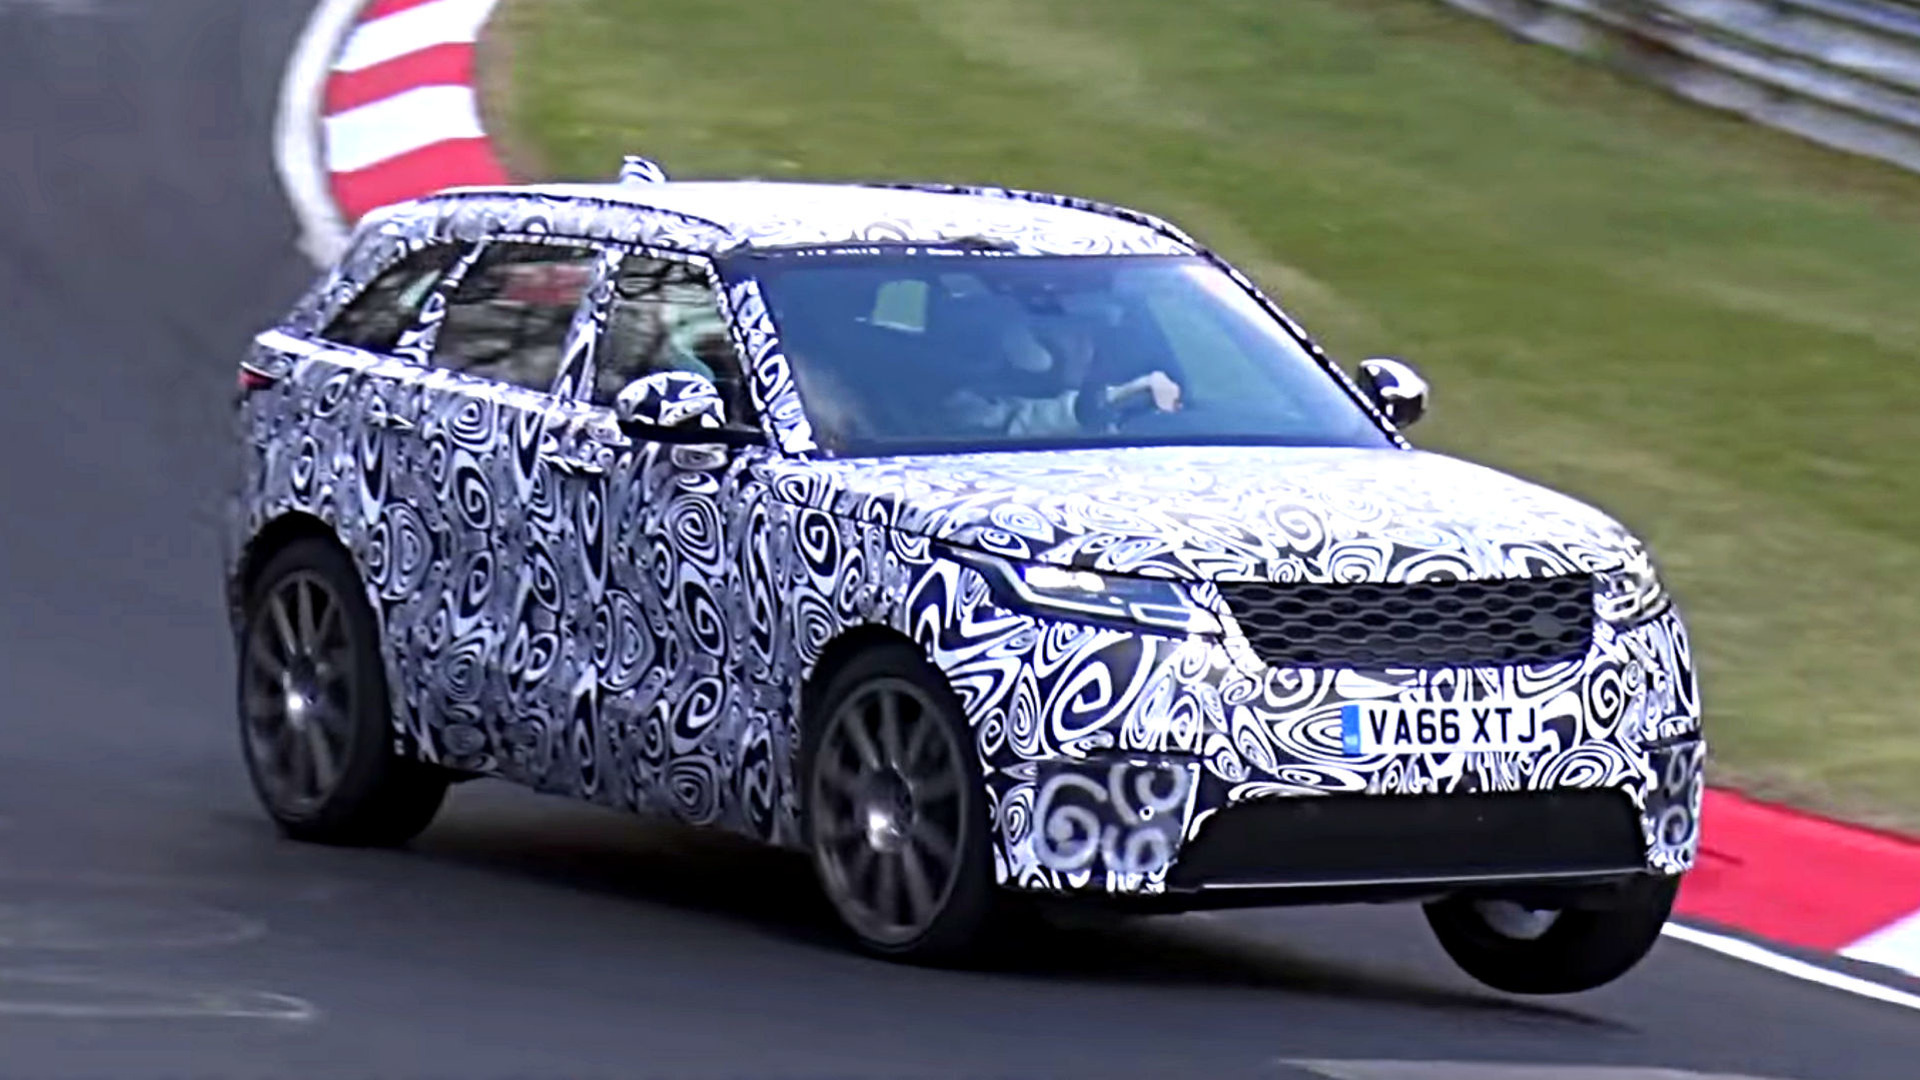 Land Rover Range Rover Velar News Articles and Press Releases